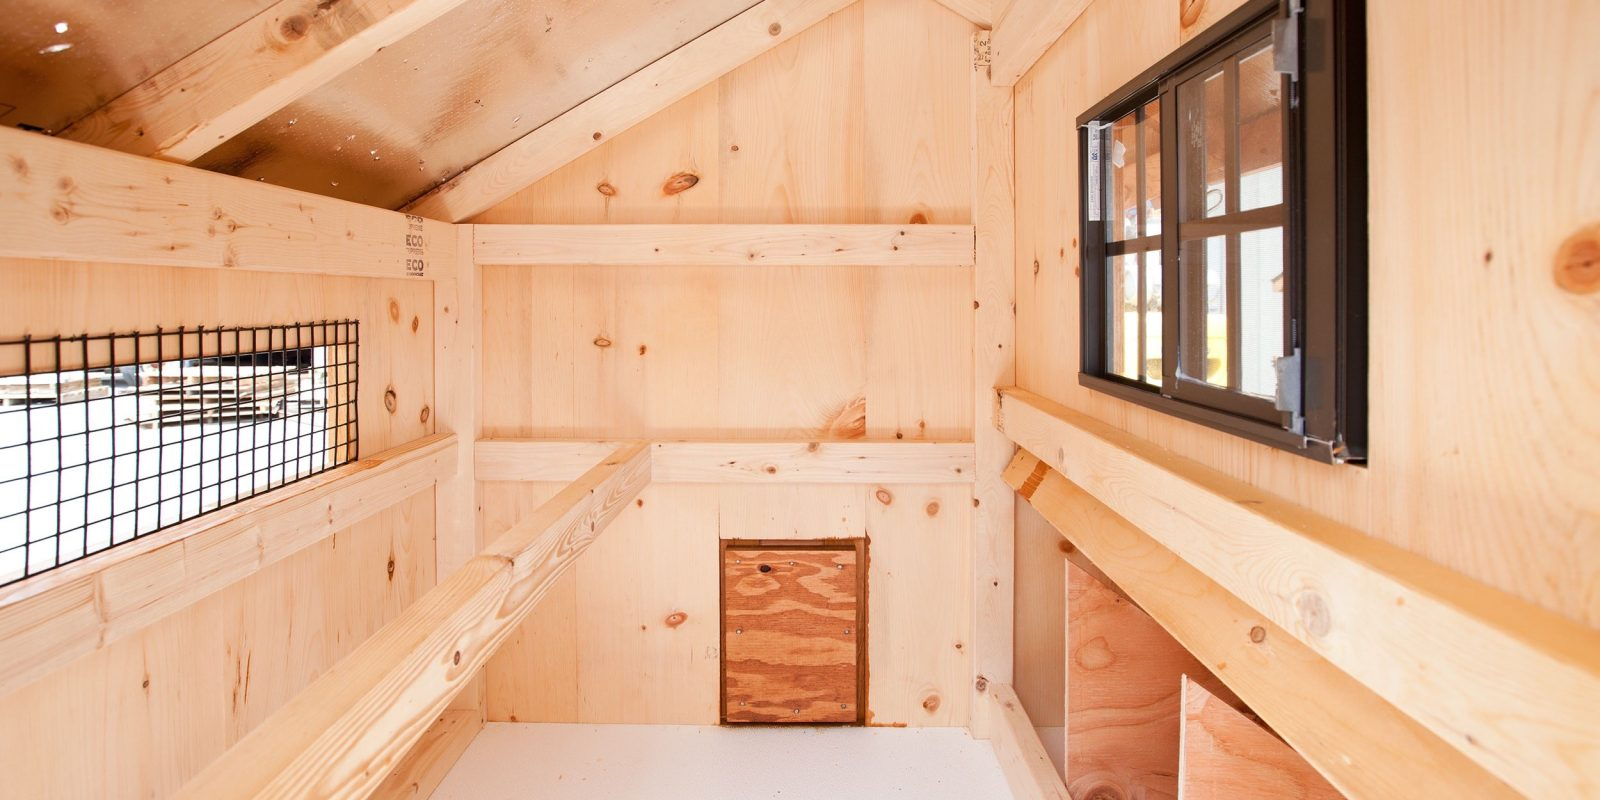 easy clean chicken coops Interior of Q34T Q44T 1